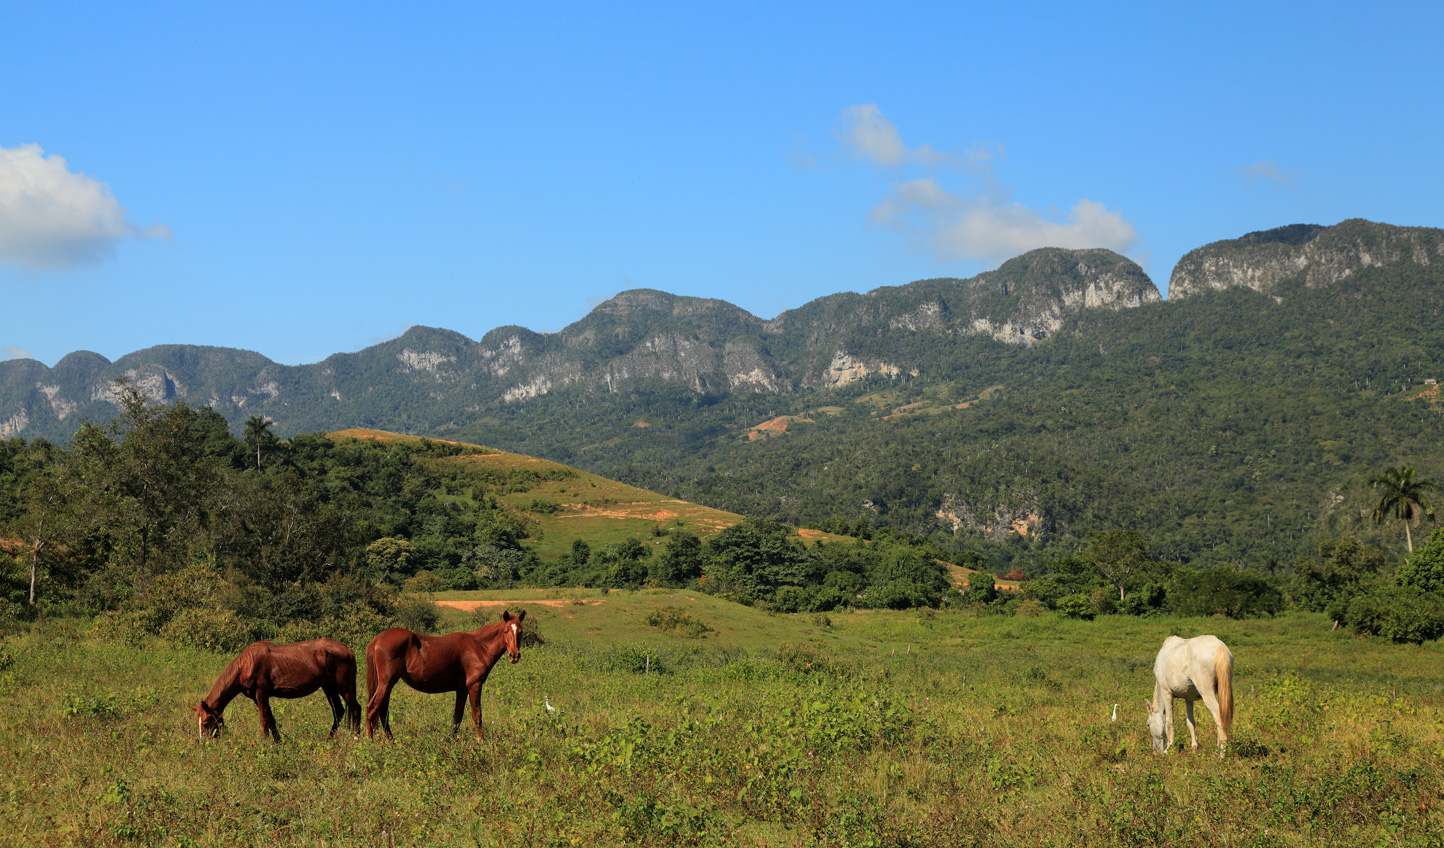 Embark on a journey through the Vinales Valley on horseback